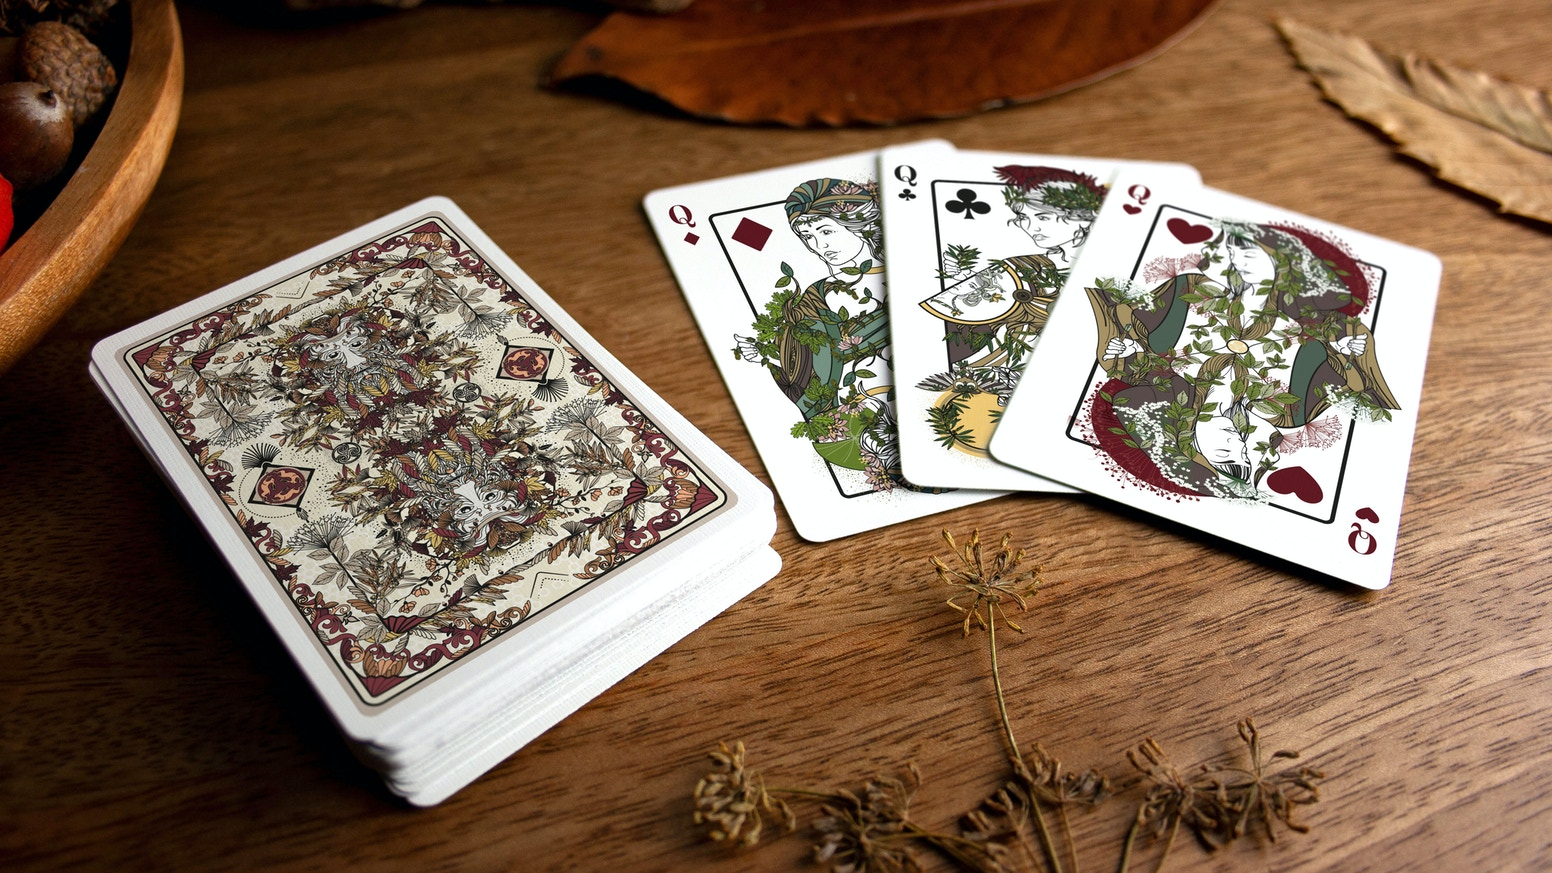 Playing cards inspired by the legends of the forest and the folklore of the plant world.  Made in Europe. Printed by Cartamundi.